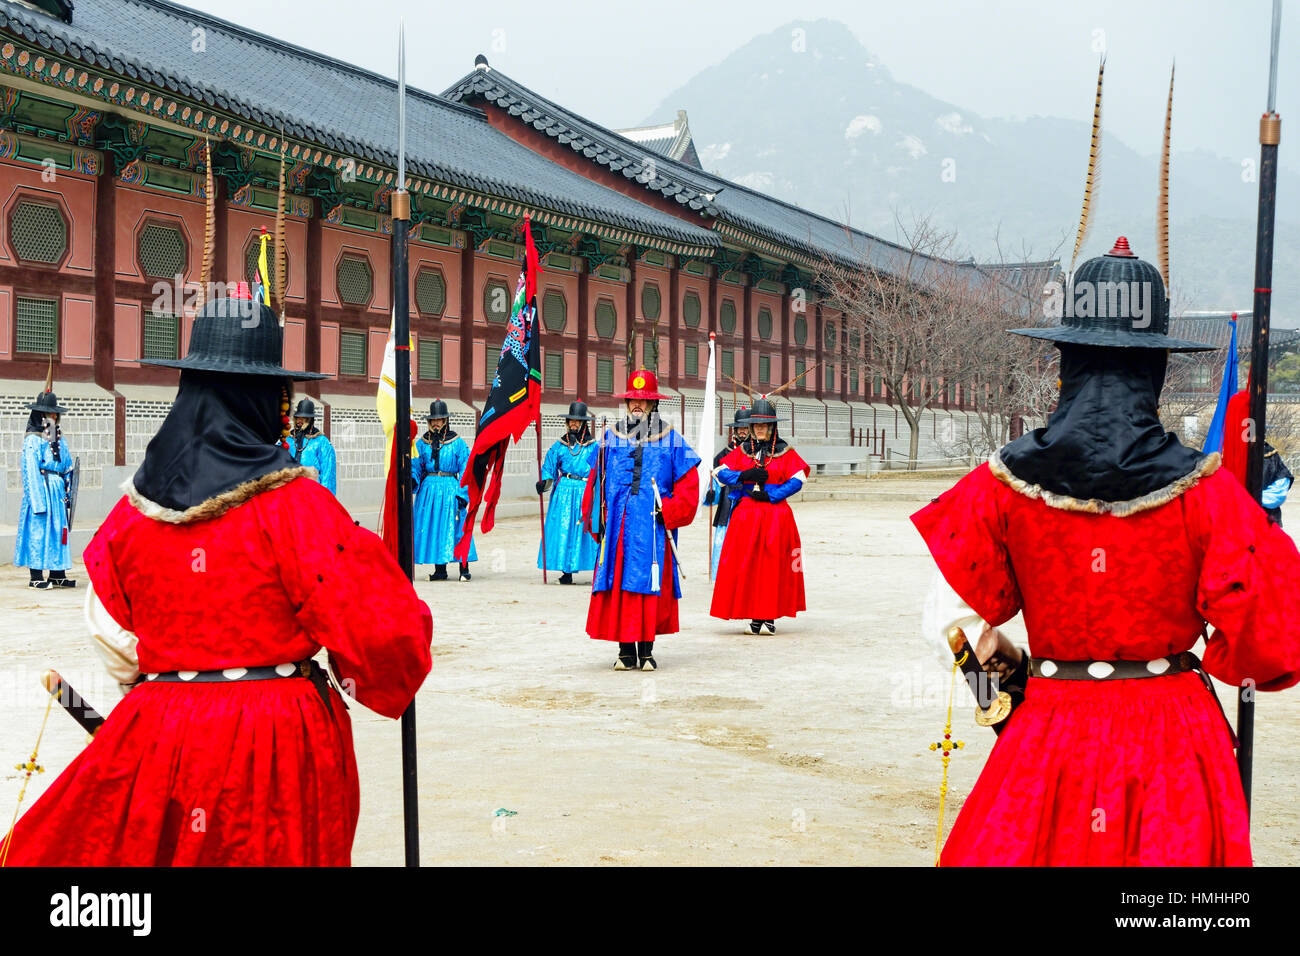 La modification de la Garde royale, cérémonie de Gyeongbokgung, Séoul, Corée du Sud Photo Stock